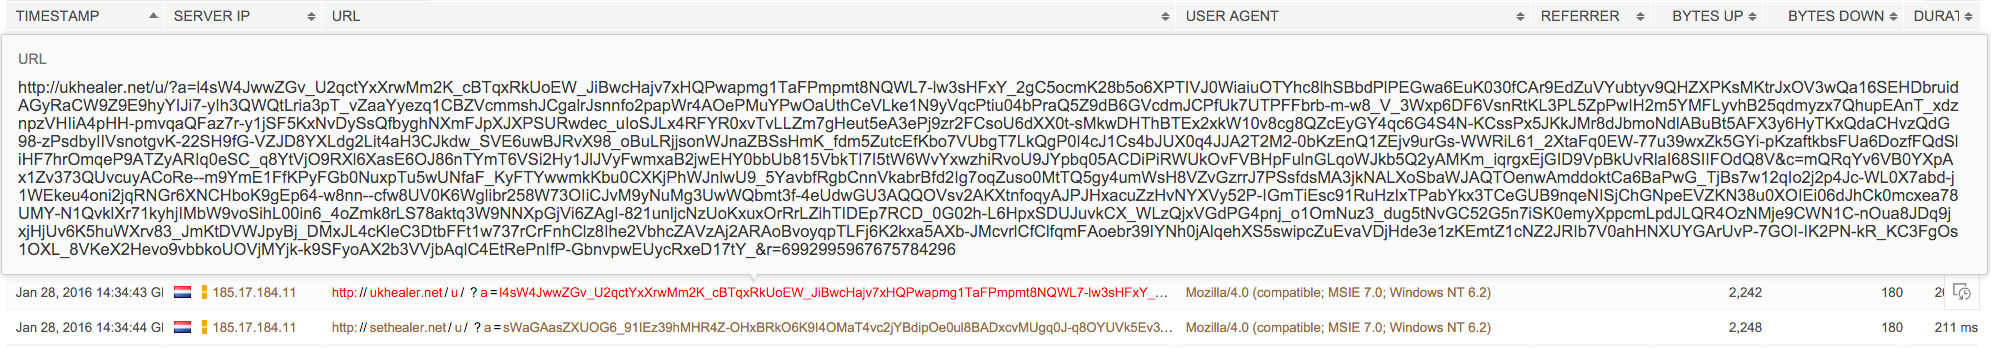 1. Example of encoded URL